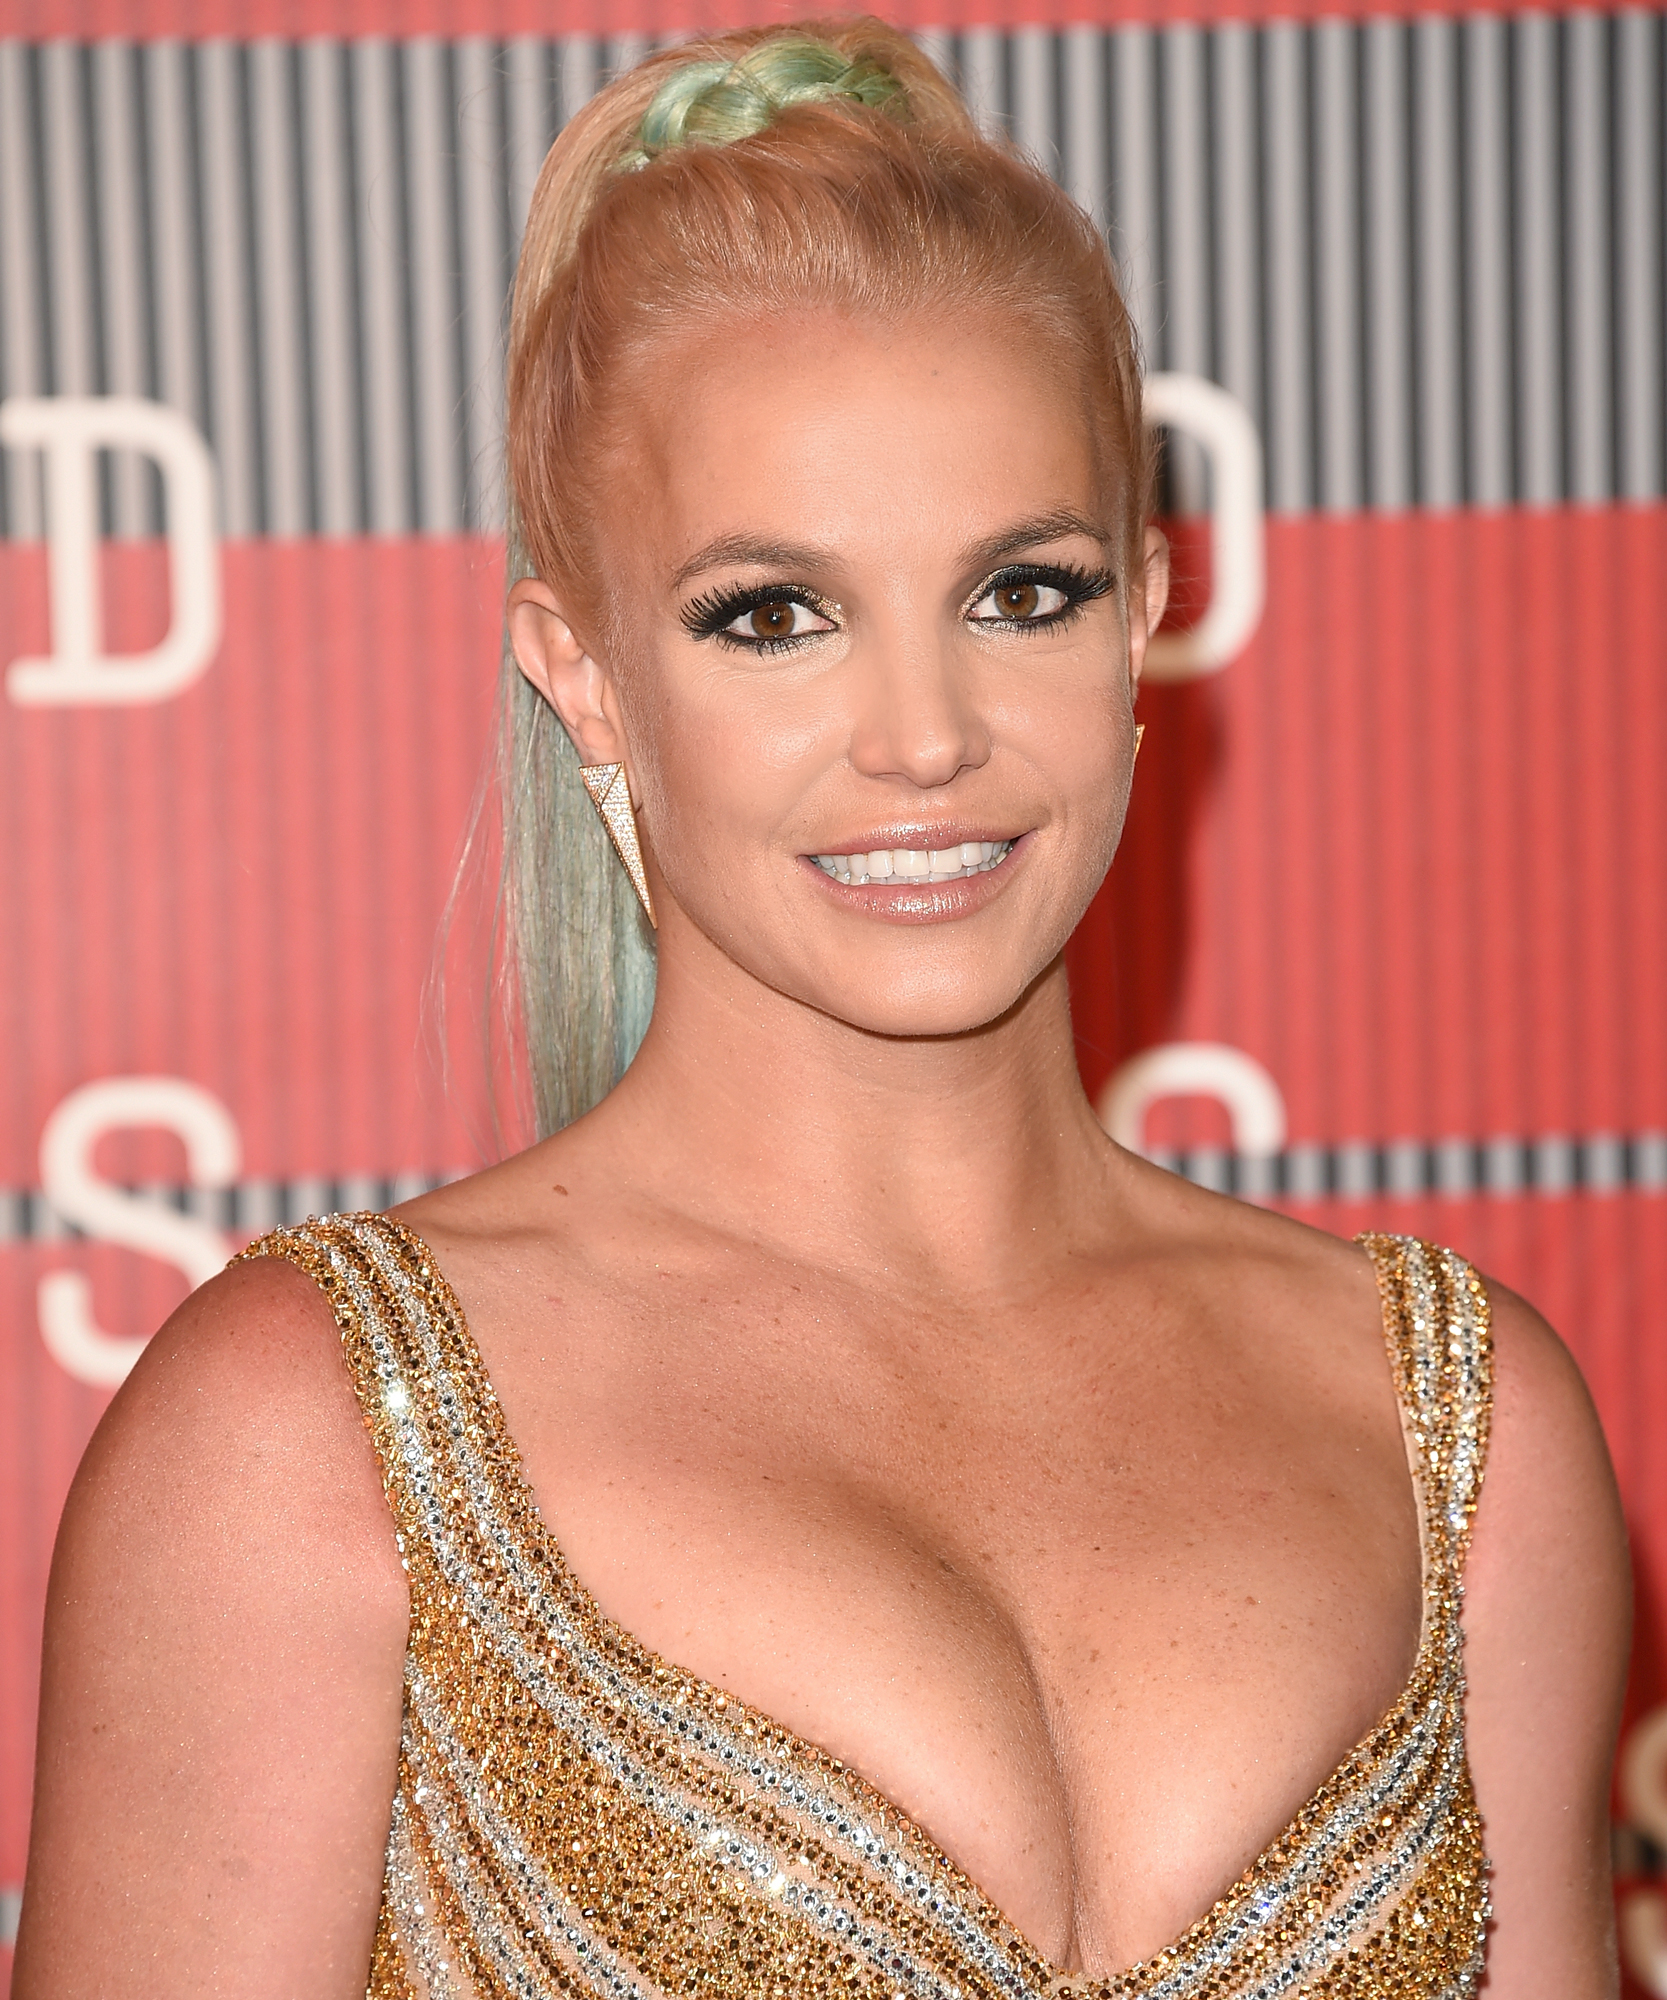 Singer Britney Spears attends the 2015 MTV Video Music Awards at Microsoft Theater on August 30, 2015 in Los Angeles, California.